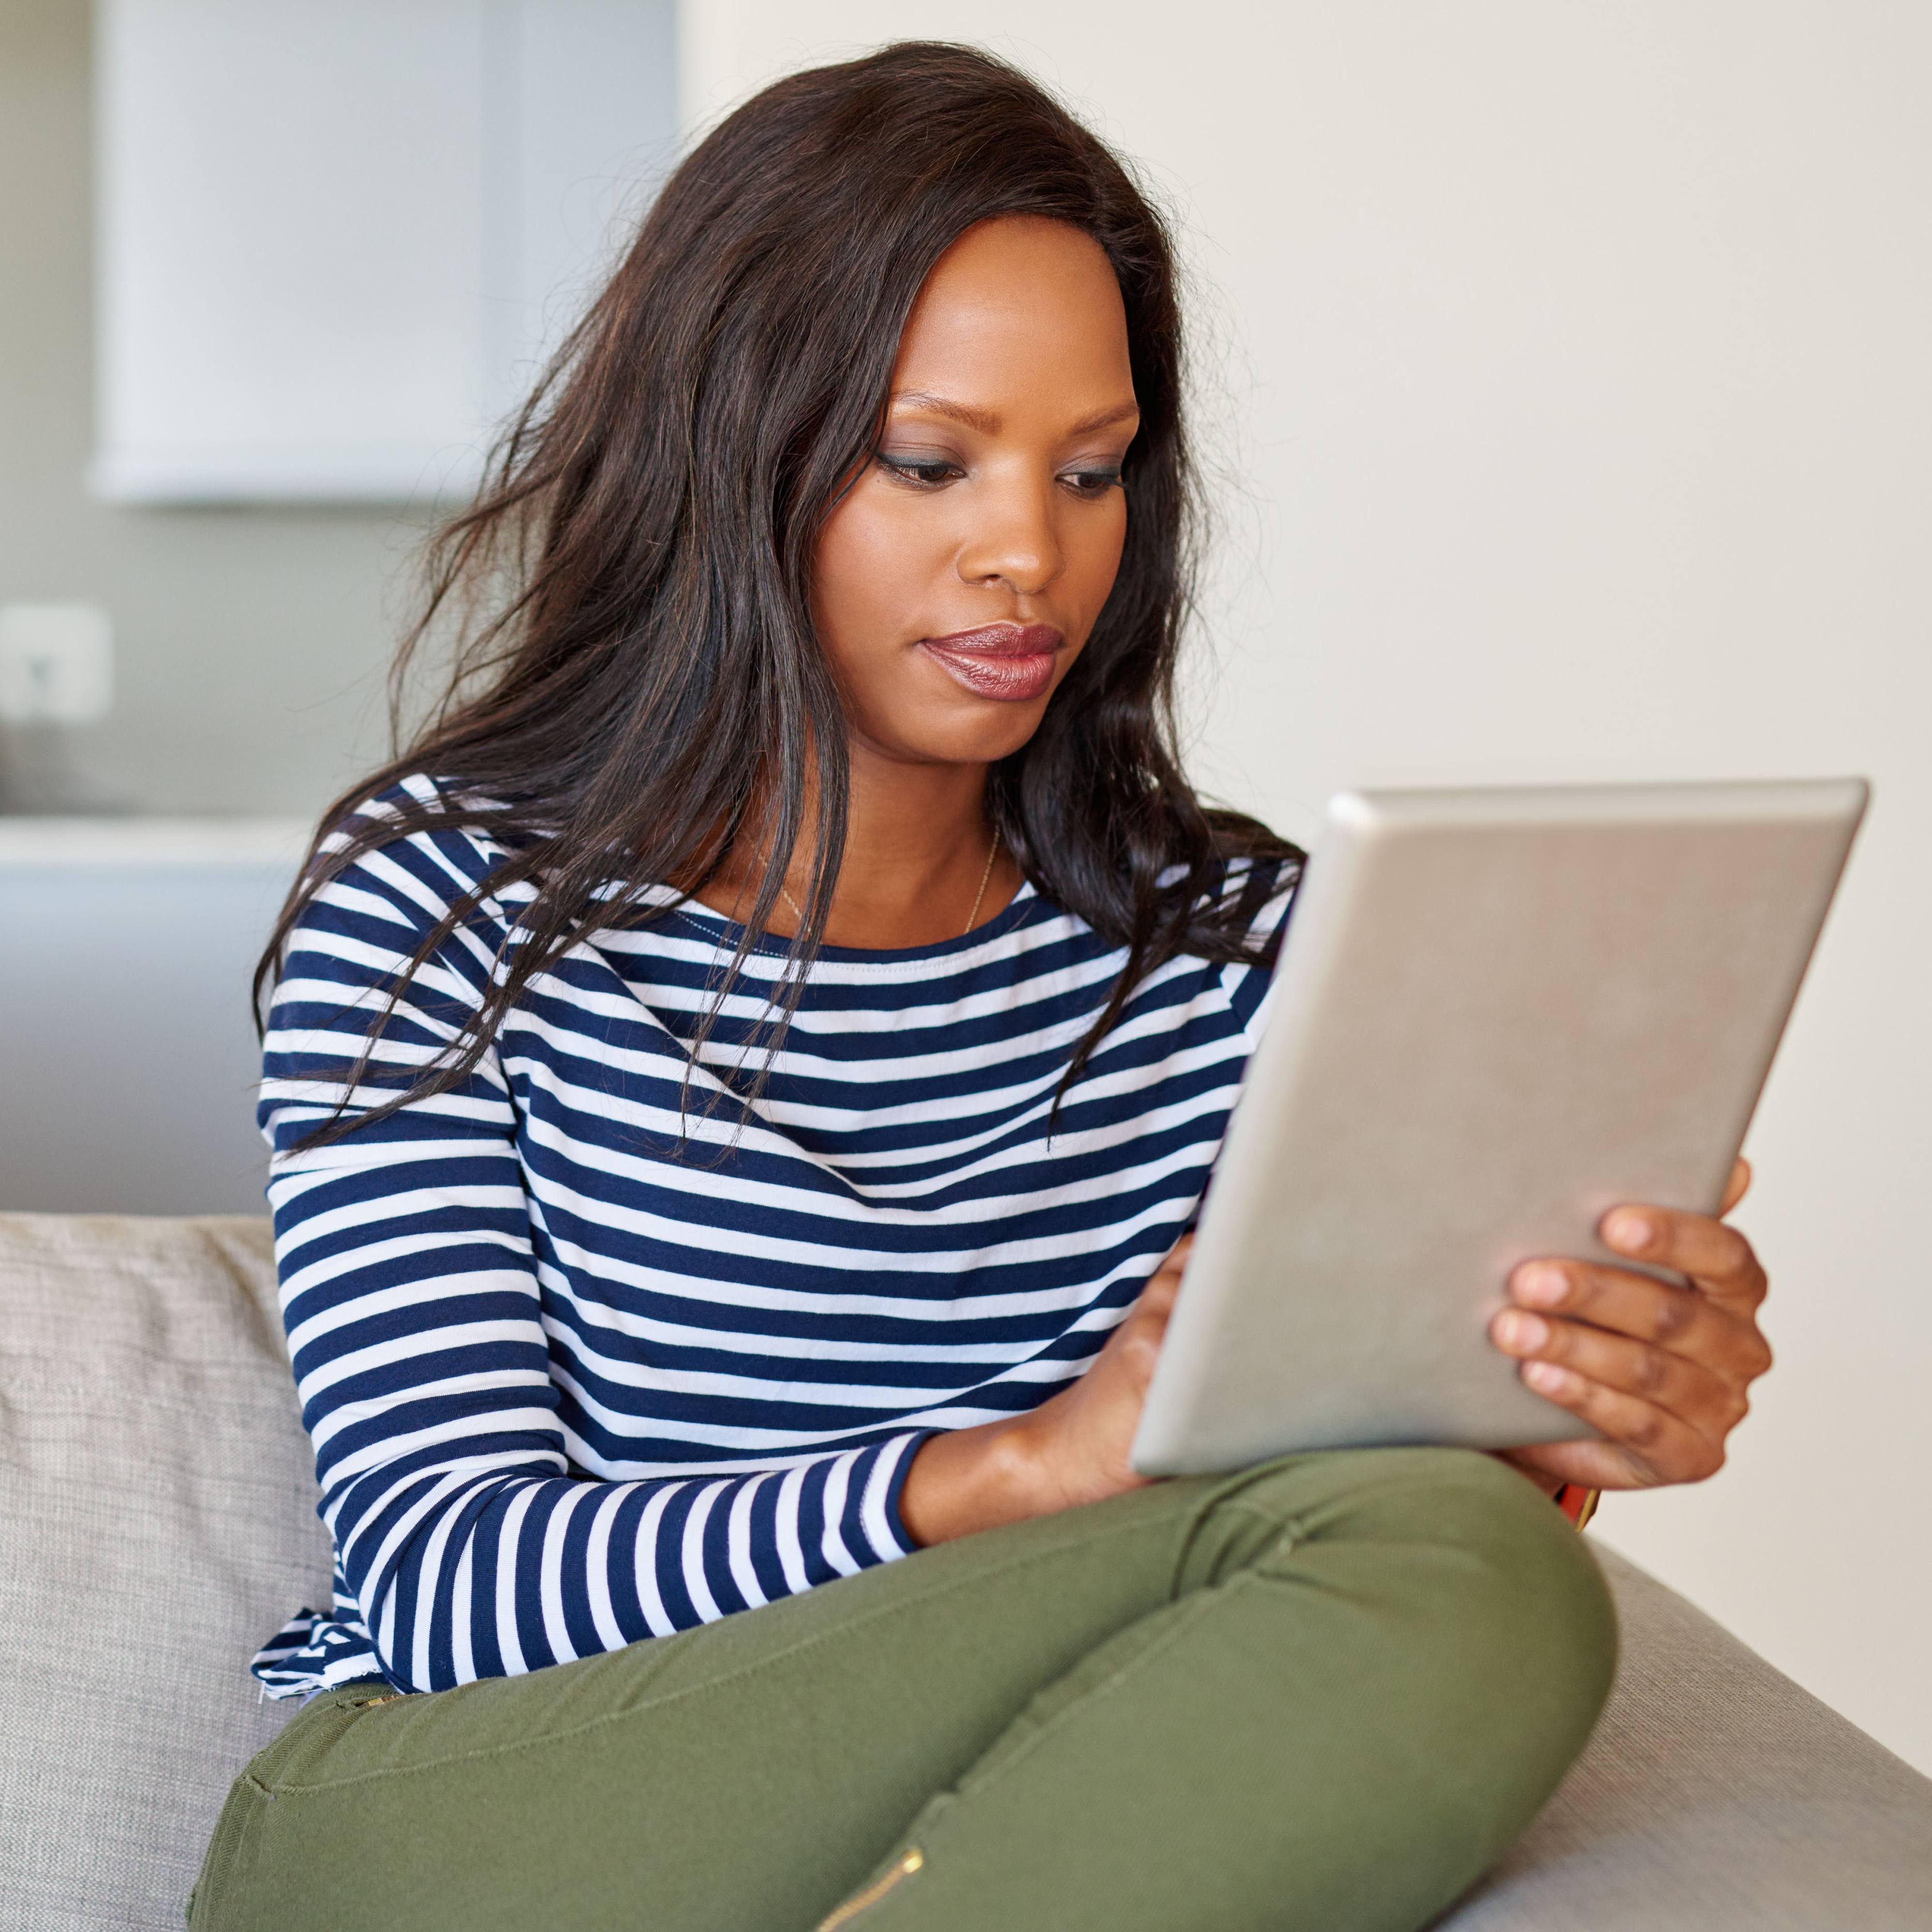 a young or middle aged Black woman curled up on a couch and reading information on a computer iPad or tablet